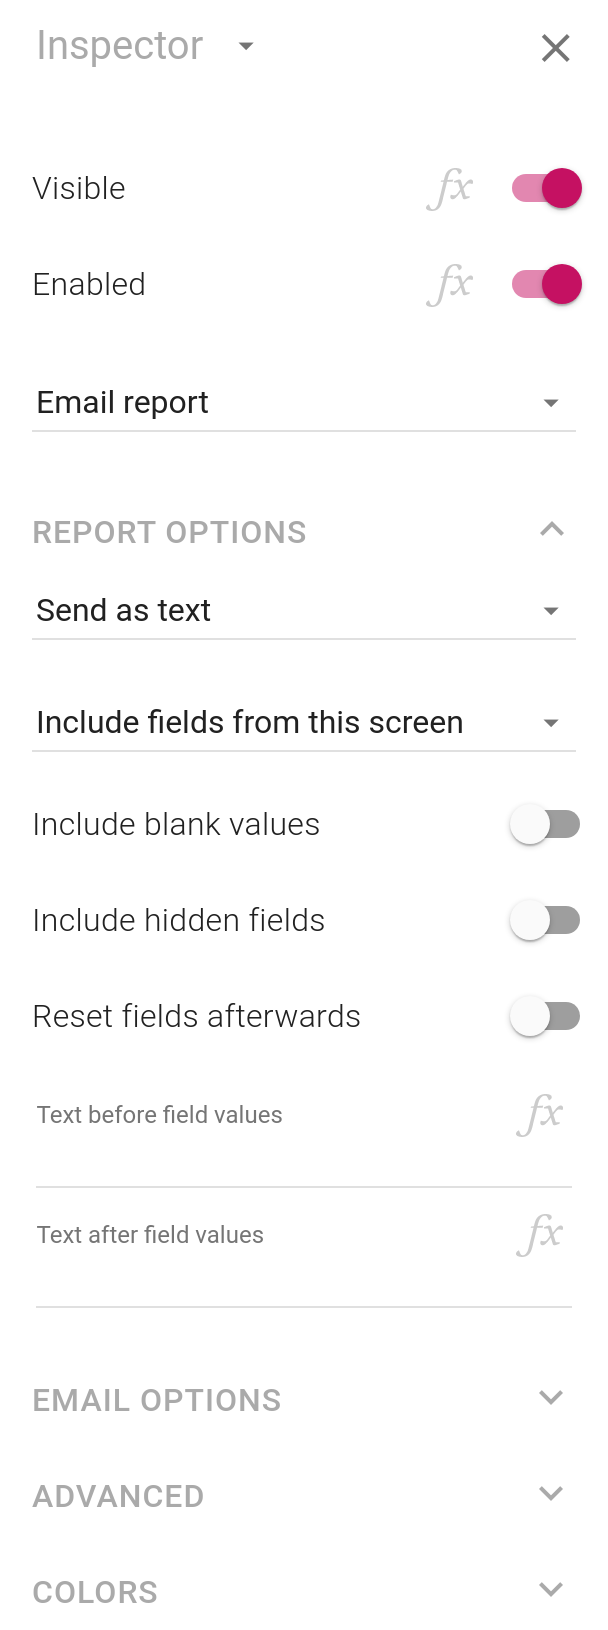 The inspector properties for e-mail reporting buttons